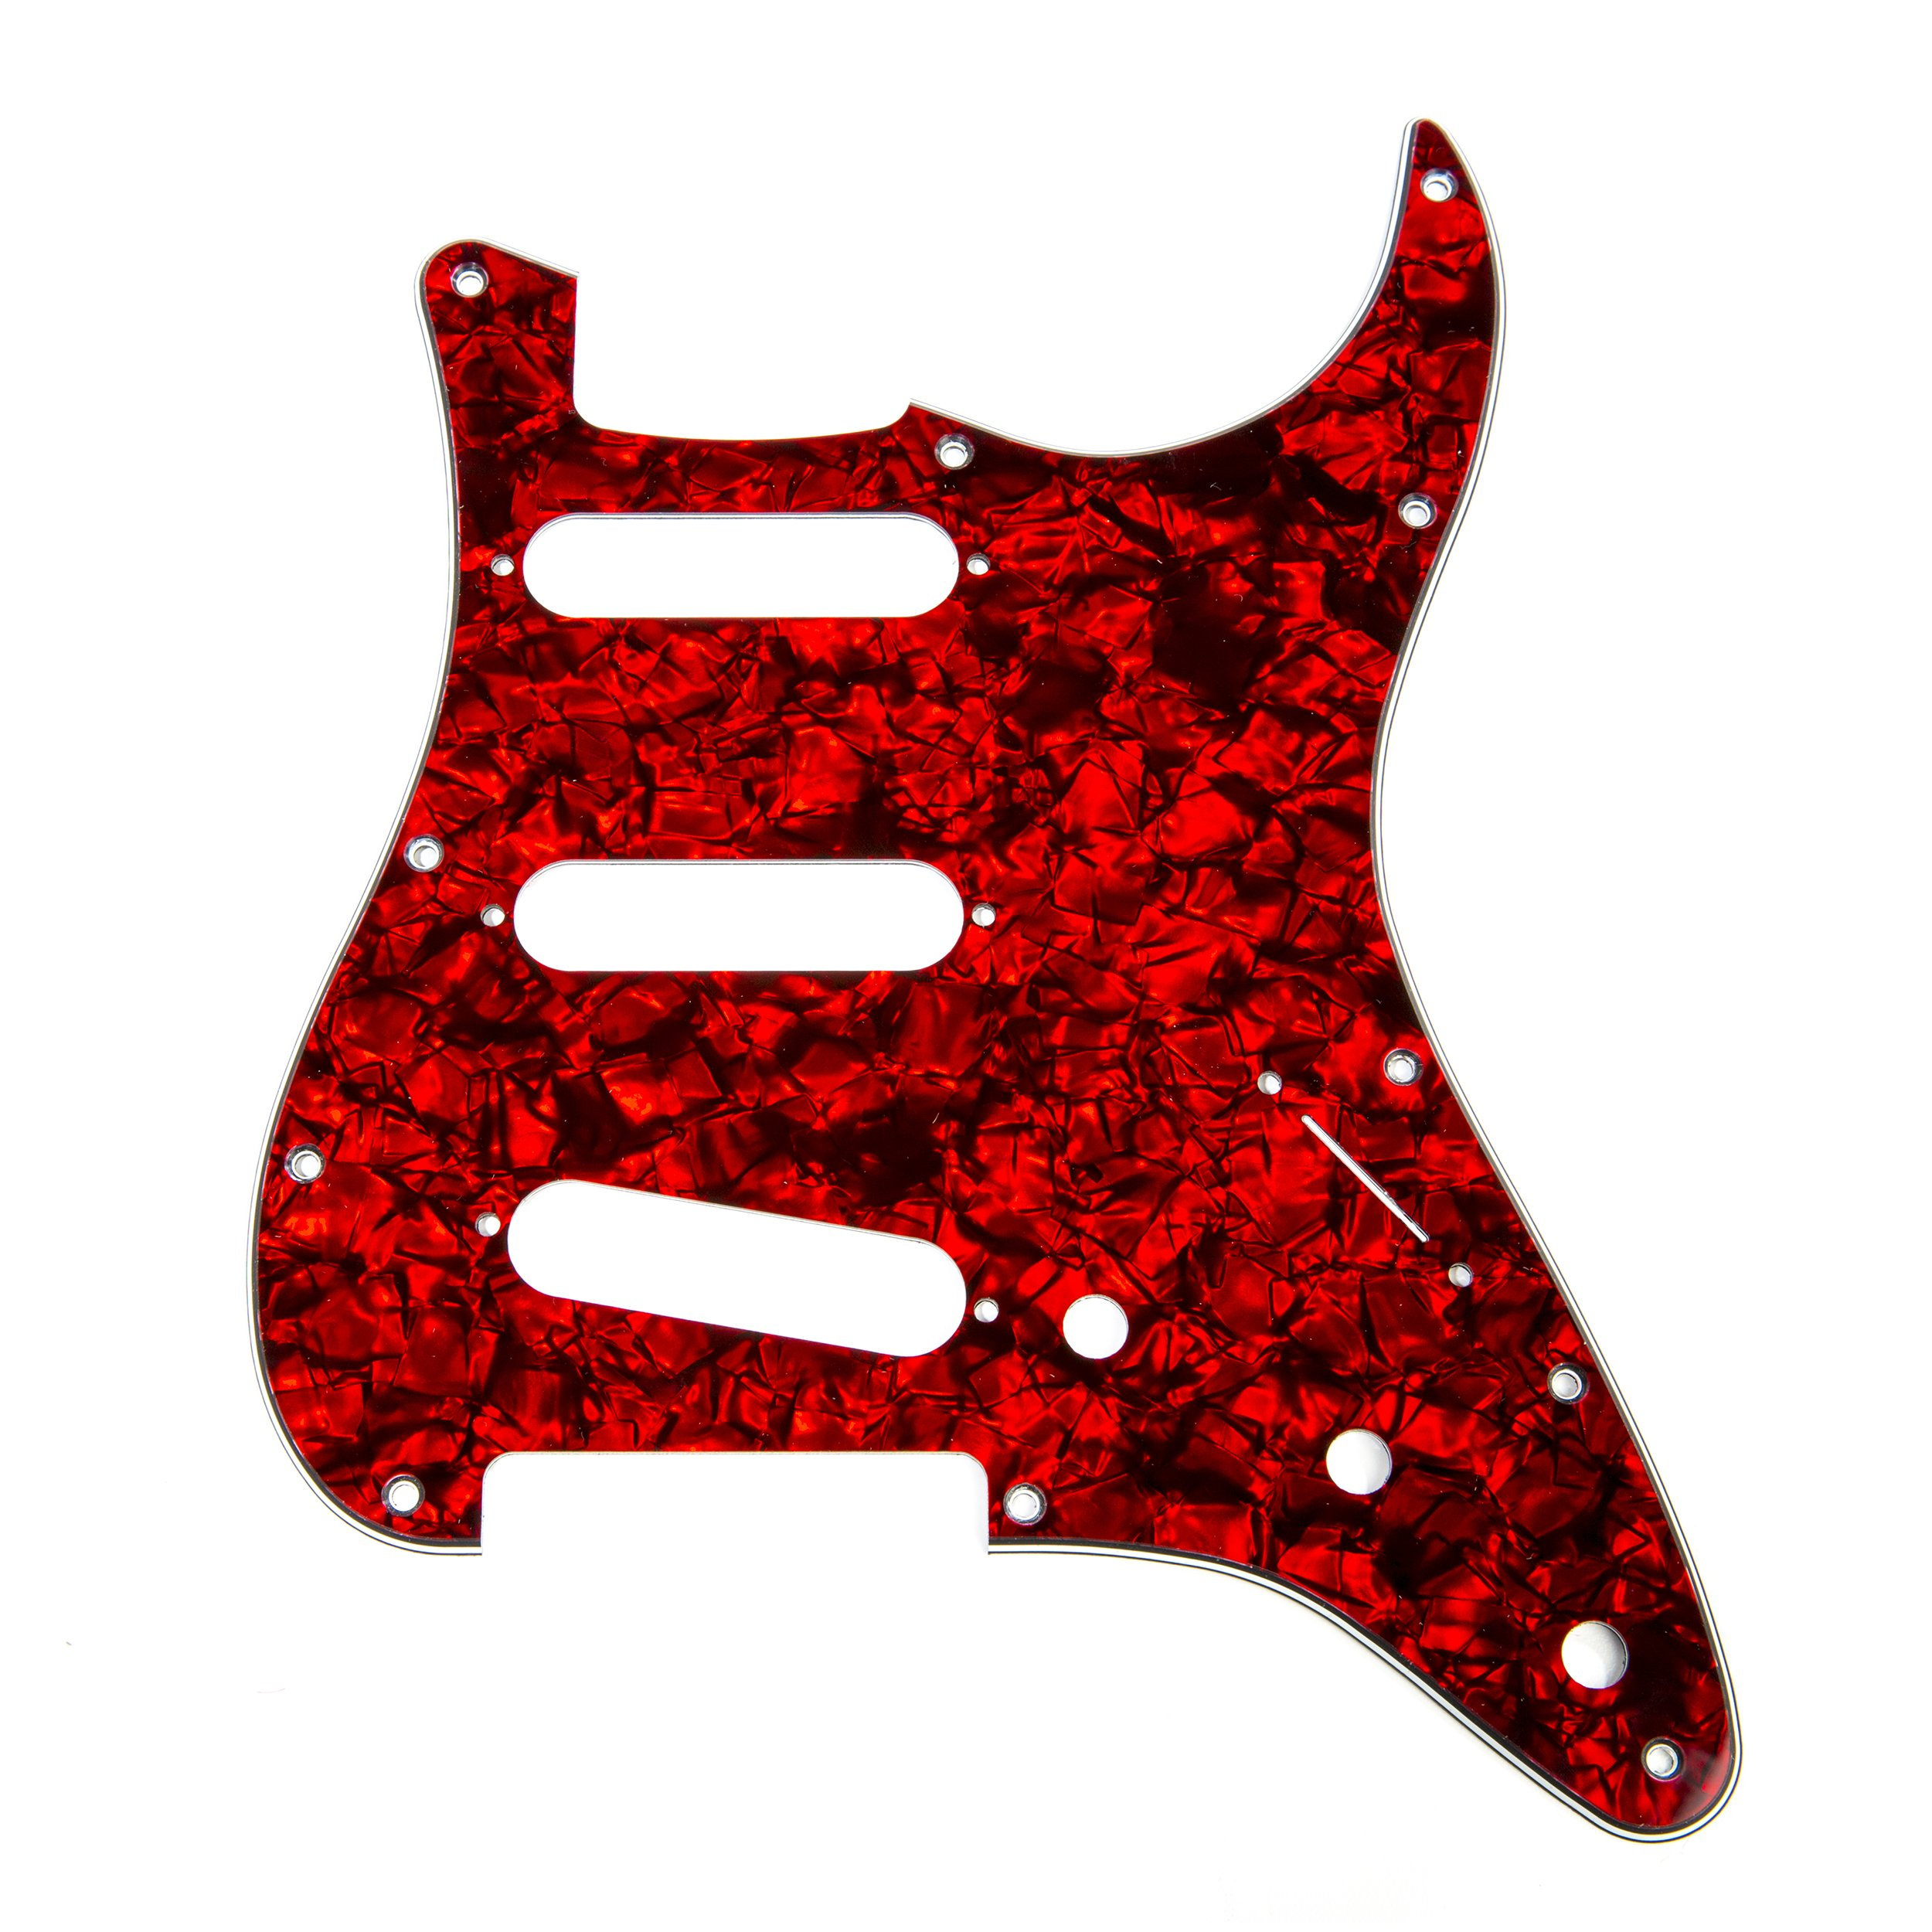 Cheap D Andrea Strat Pickguards for Electric Guitar Red Pearl Black Friday & Cyber Monday 2019